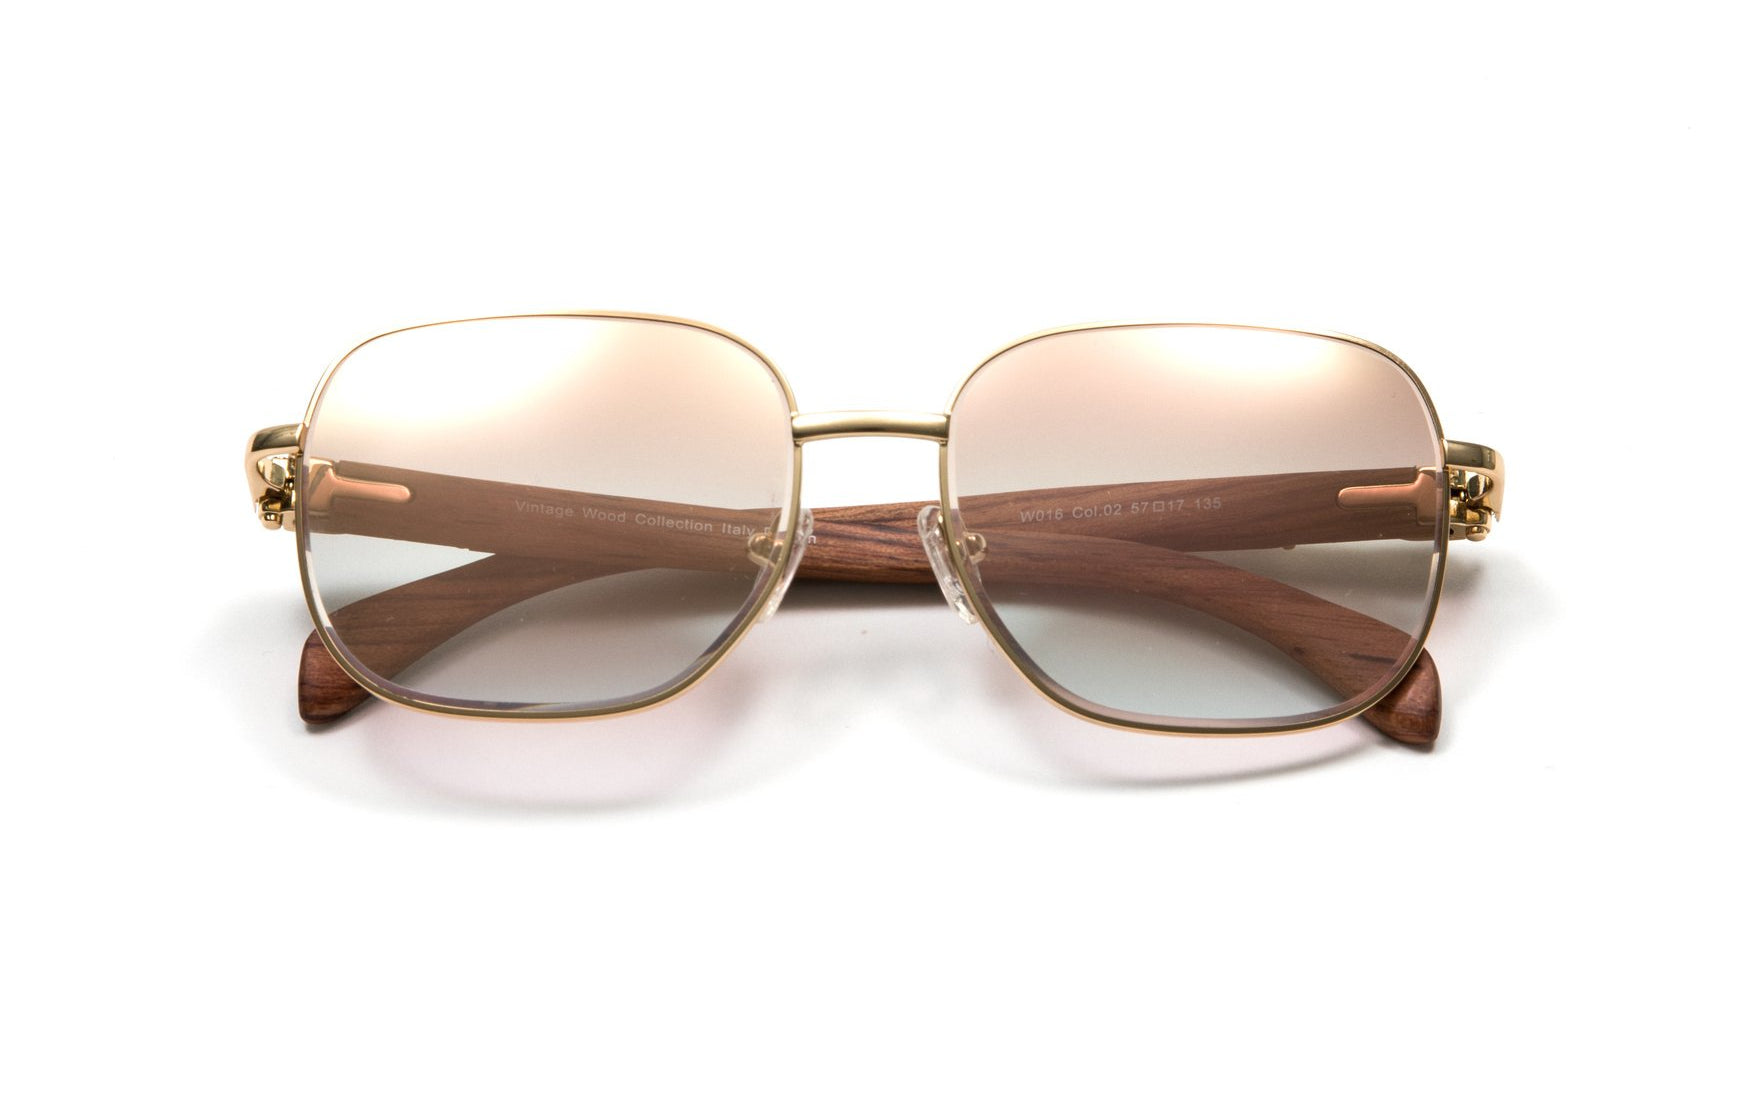 Square Gold Full Rim Frame, Brown Wood Temples, Gradient Brown White Gold Flash Lens